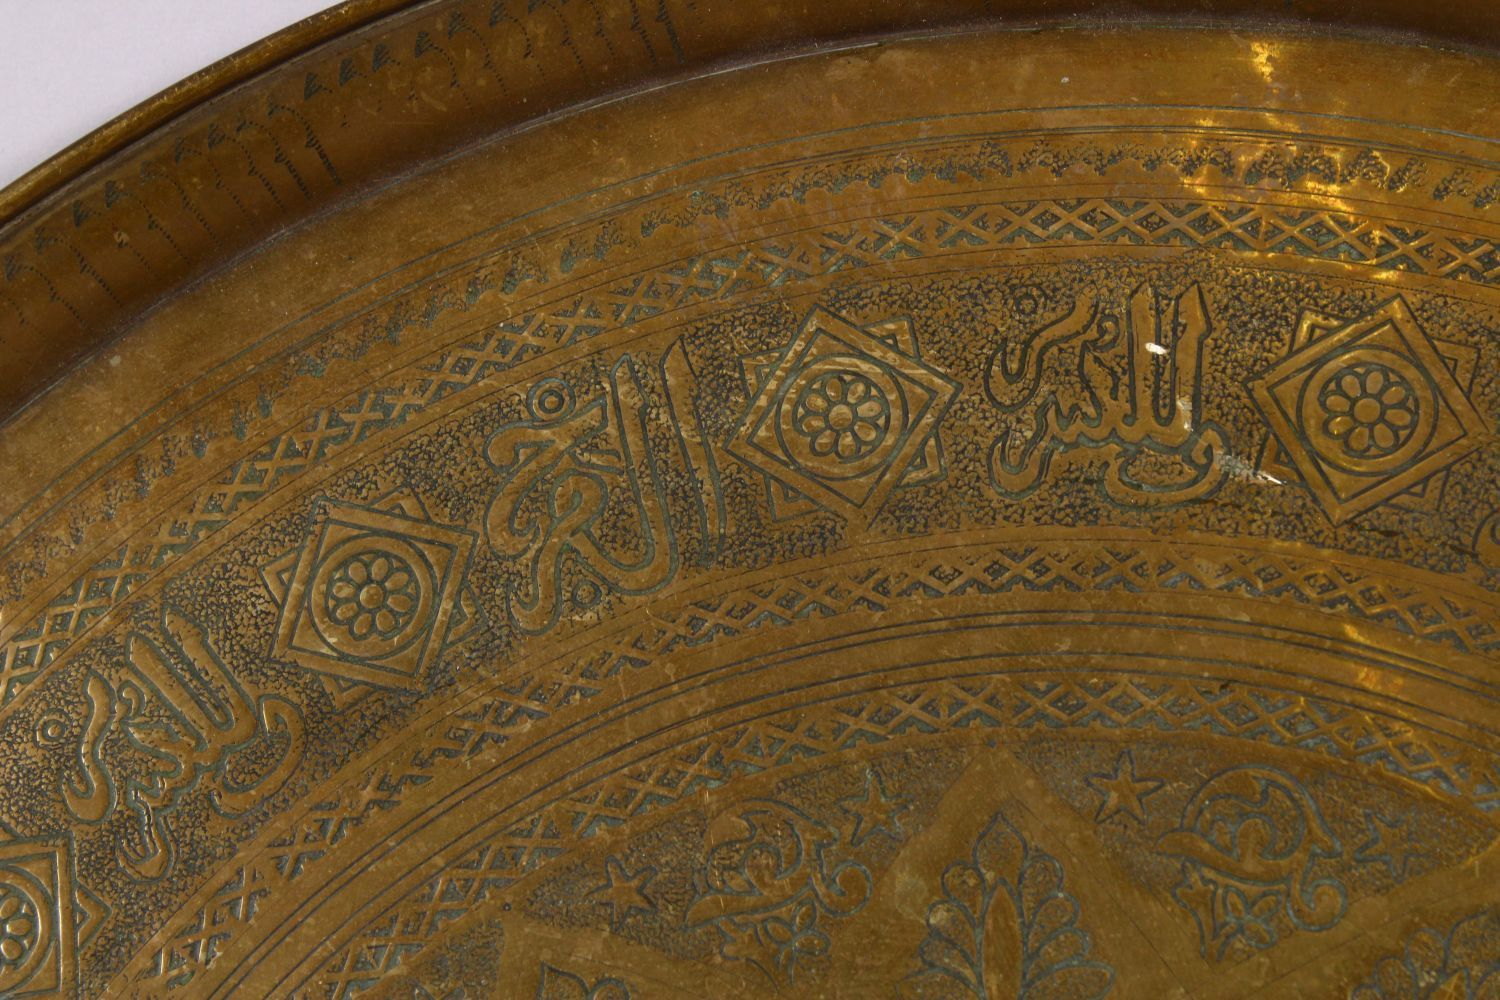 A LARGE 19TH CENTURY EGYPTIAN BRASS CHARGER / TRAY, with carved bands of calligraphy and motif - Image 3 of 7